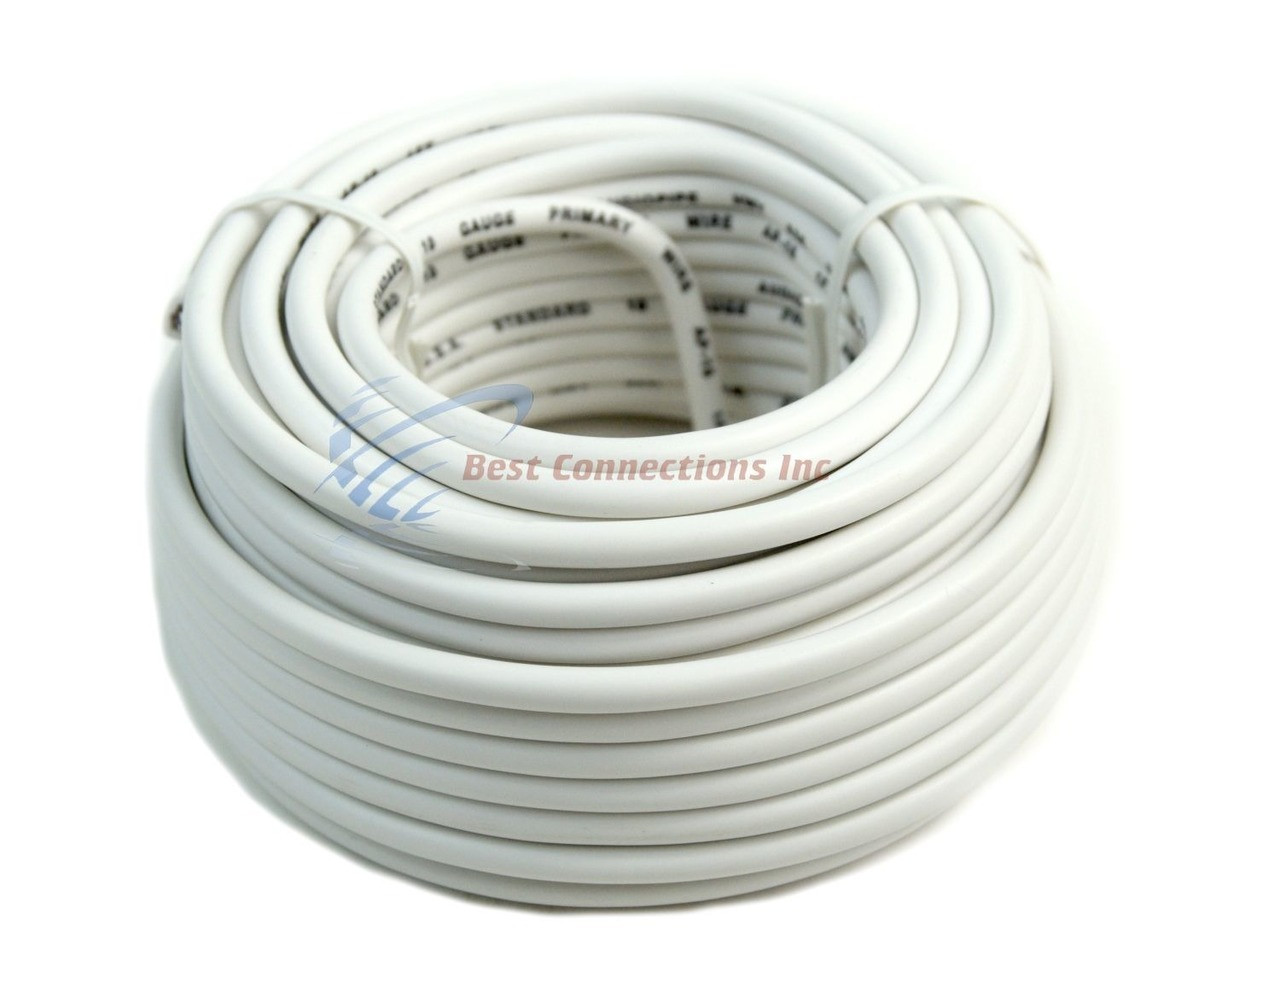 10 Gauge 50 Feet White Audiopipe Car Audio Home Remote Primary Cable Ethernet Wiring Wire Led